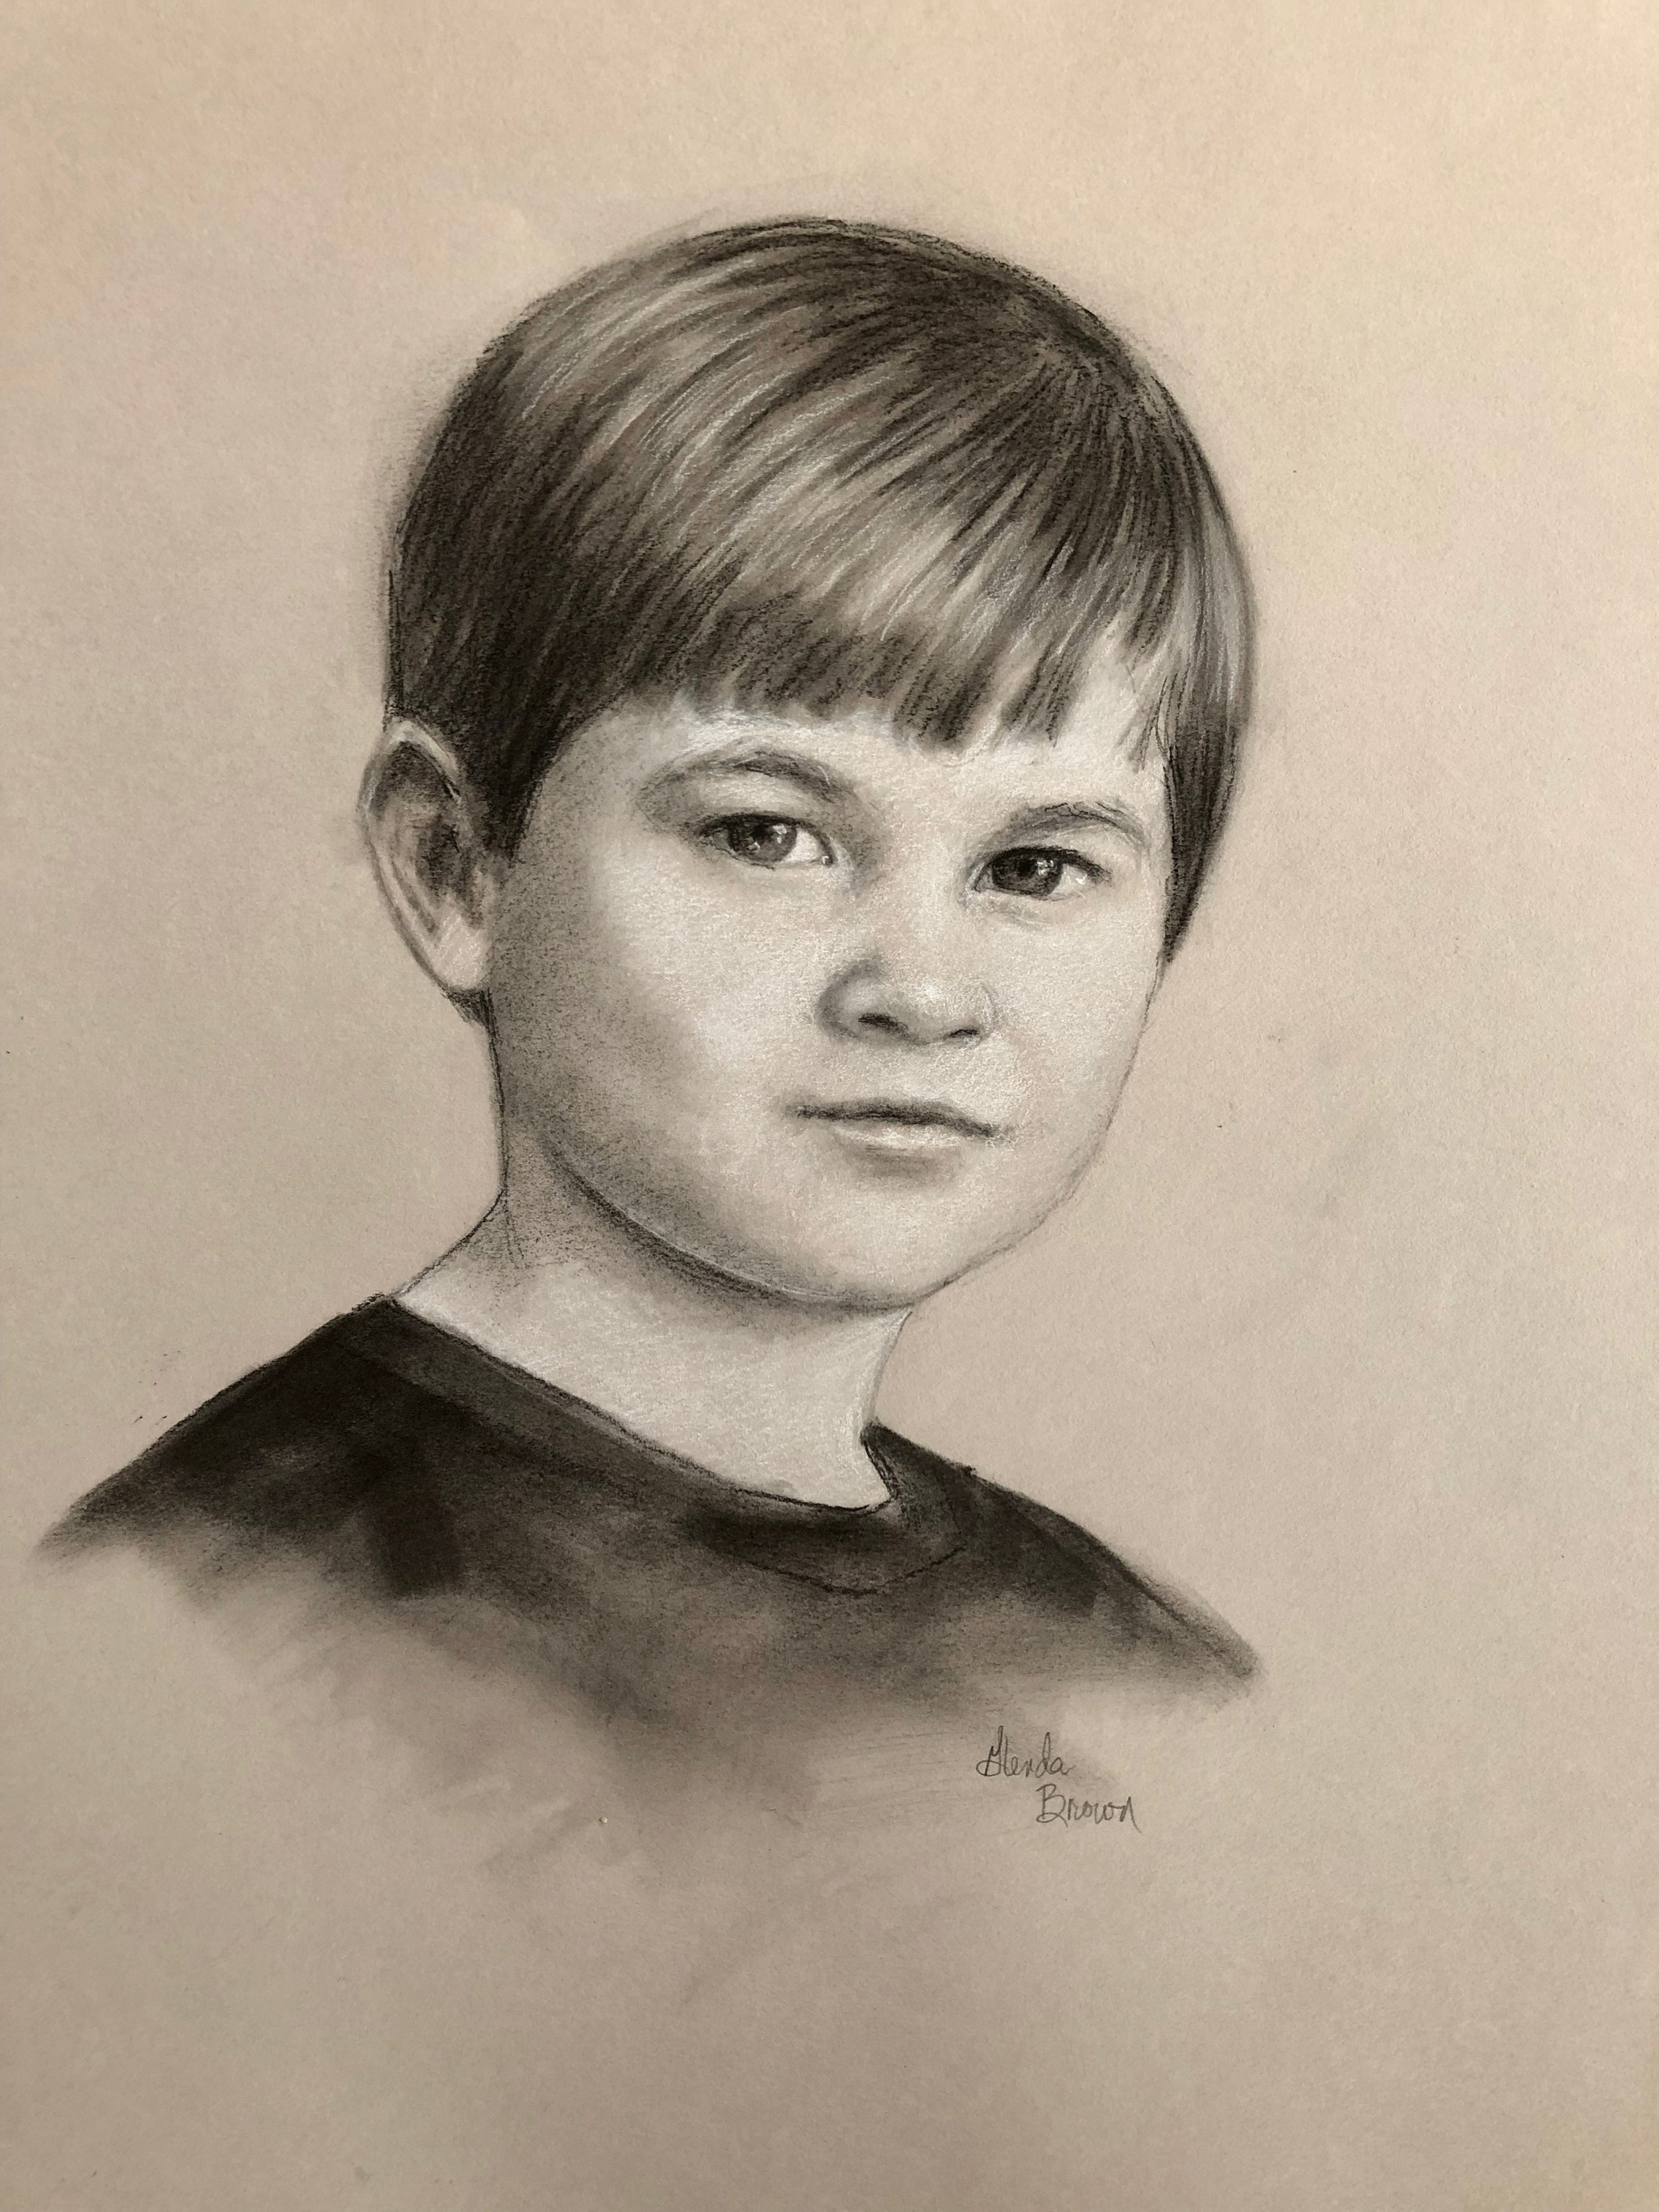 Sam - Charcoal on Canson Paper - 14.5x10.5